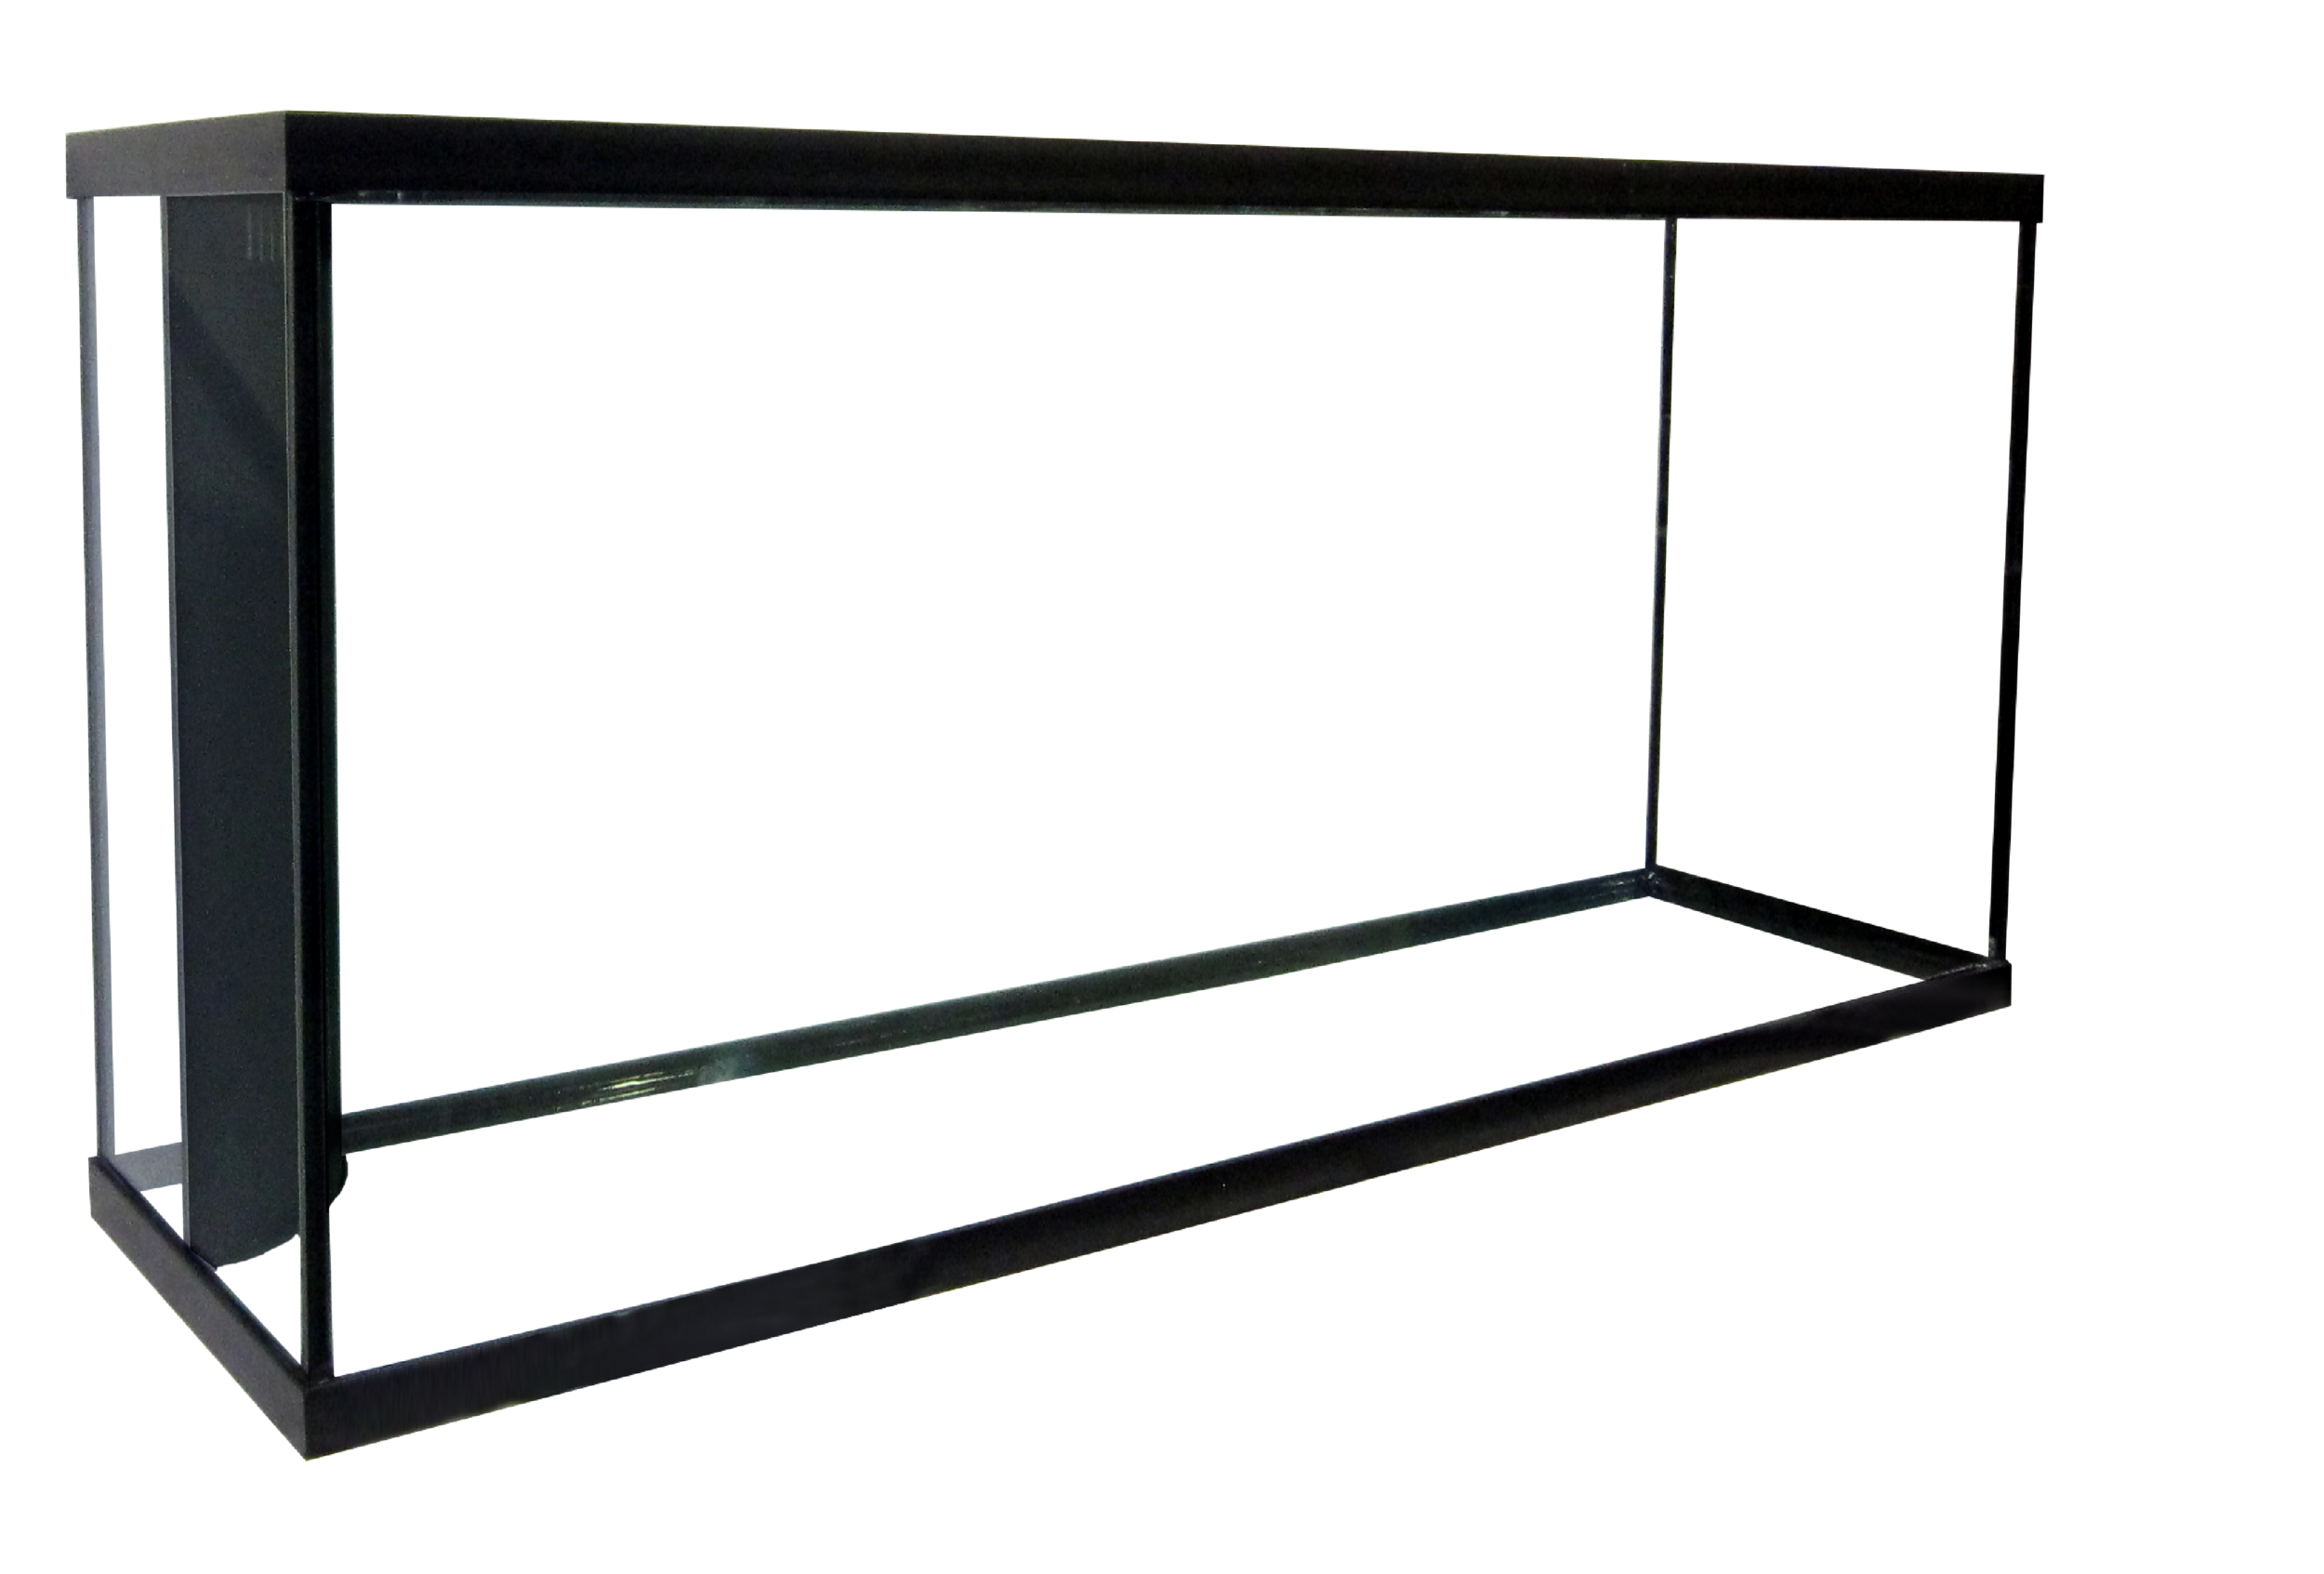 "100 Regular Reef Ready Aquarium - 60x18x24""   SKU#: AM18100  UPC#: 7-49729-18100-2  Product Dimension: 60.5""x18.5""x25.5""  Capacity: Approximately 112 gallons  Weight: 185.6 lbs"